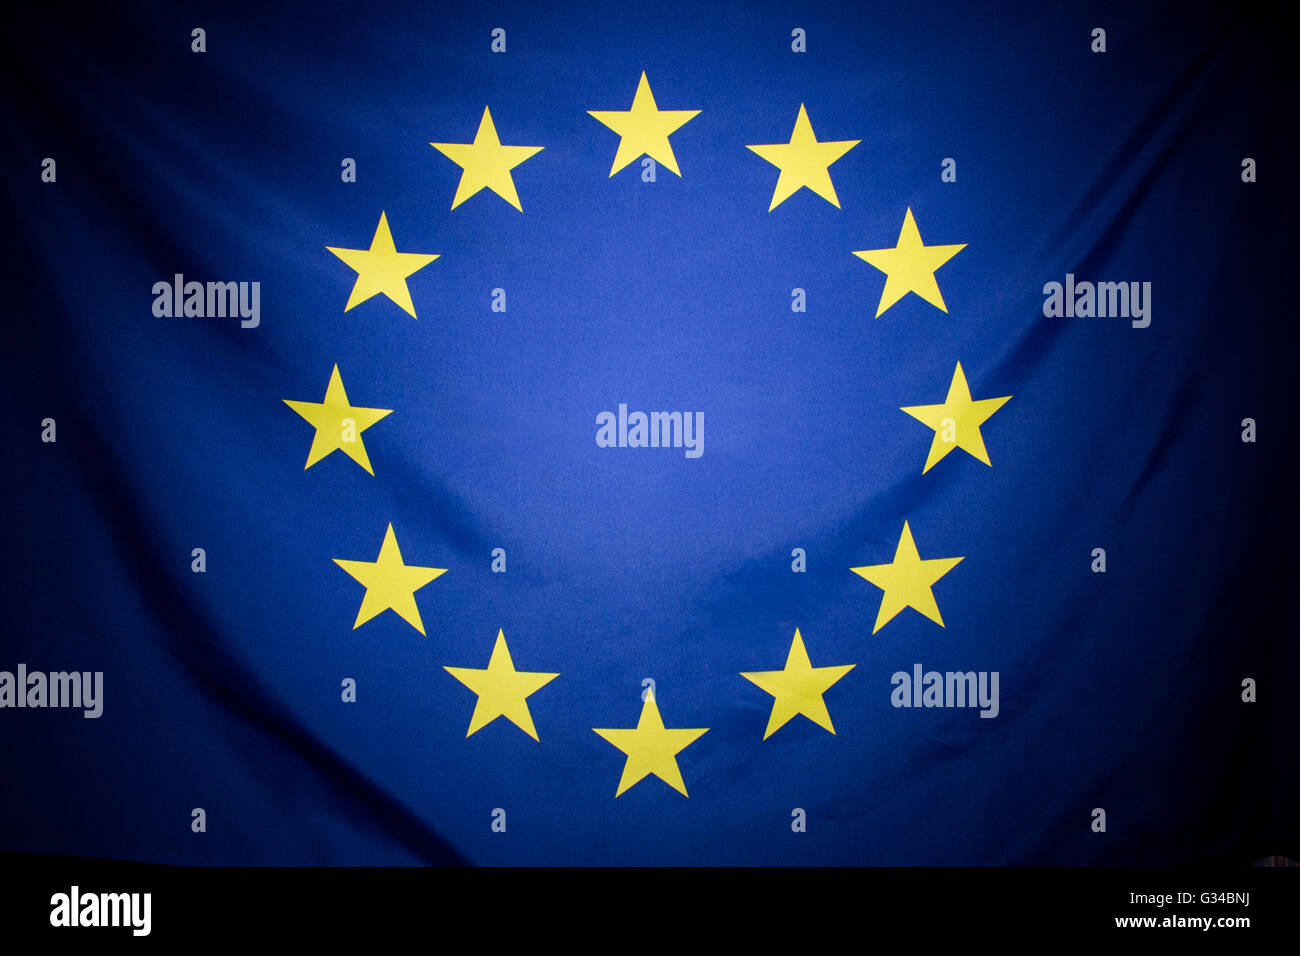 The European Flag - symbol of the European Union, and the Council of Europe. - Stock Image